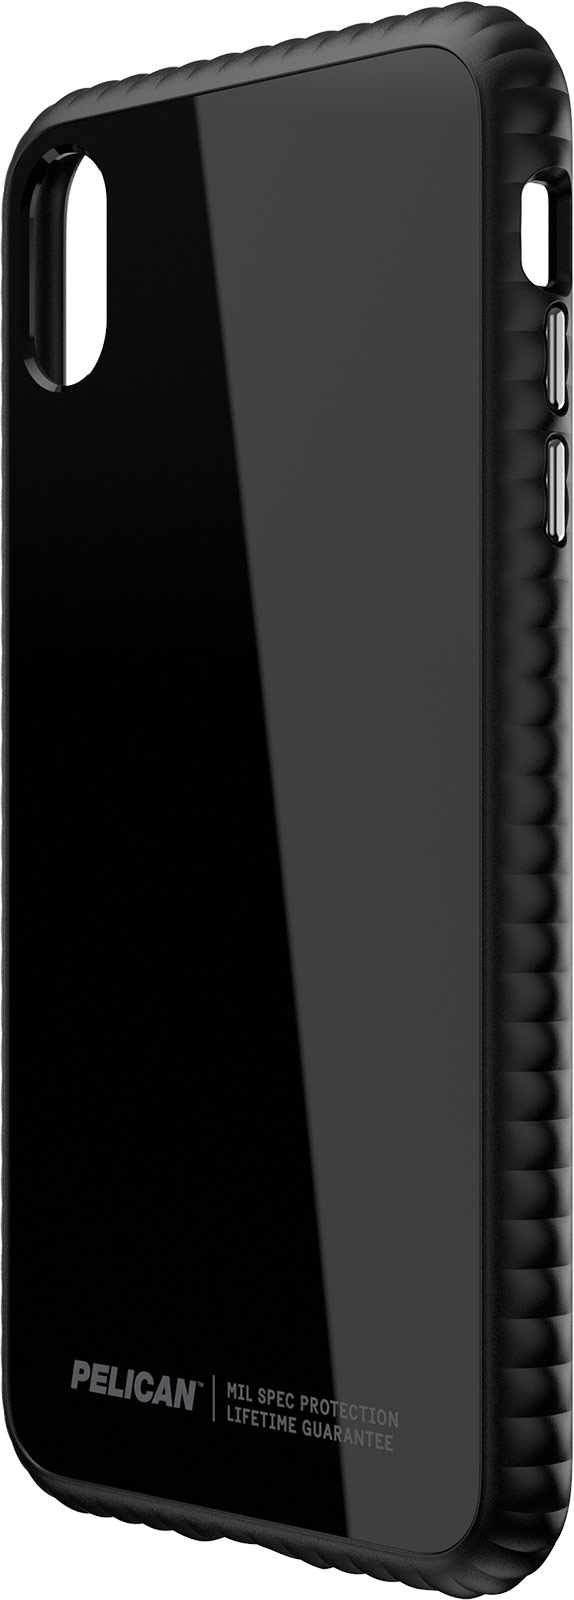 pelican iphone apple c43160 inch guardian clear protective phone case